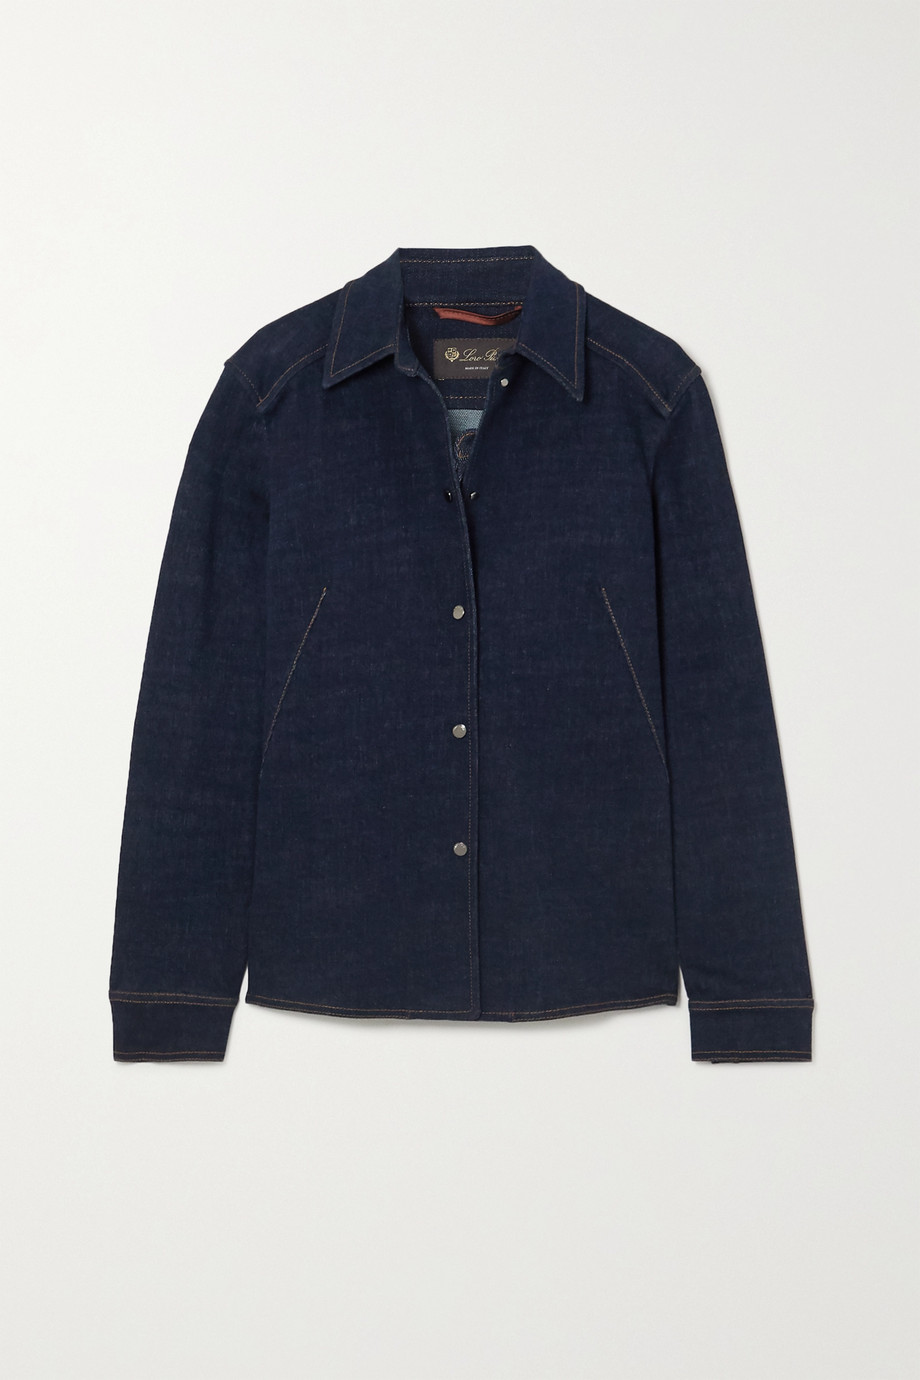 Loro Piana Denim jacket